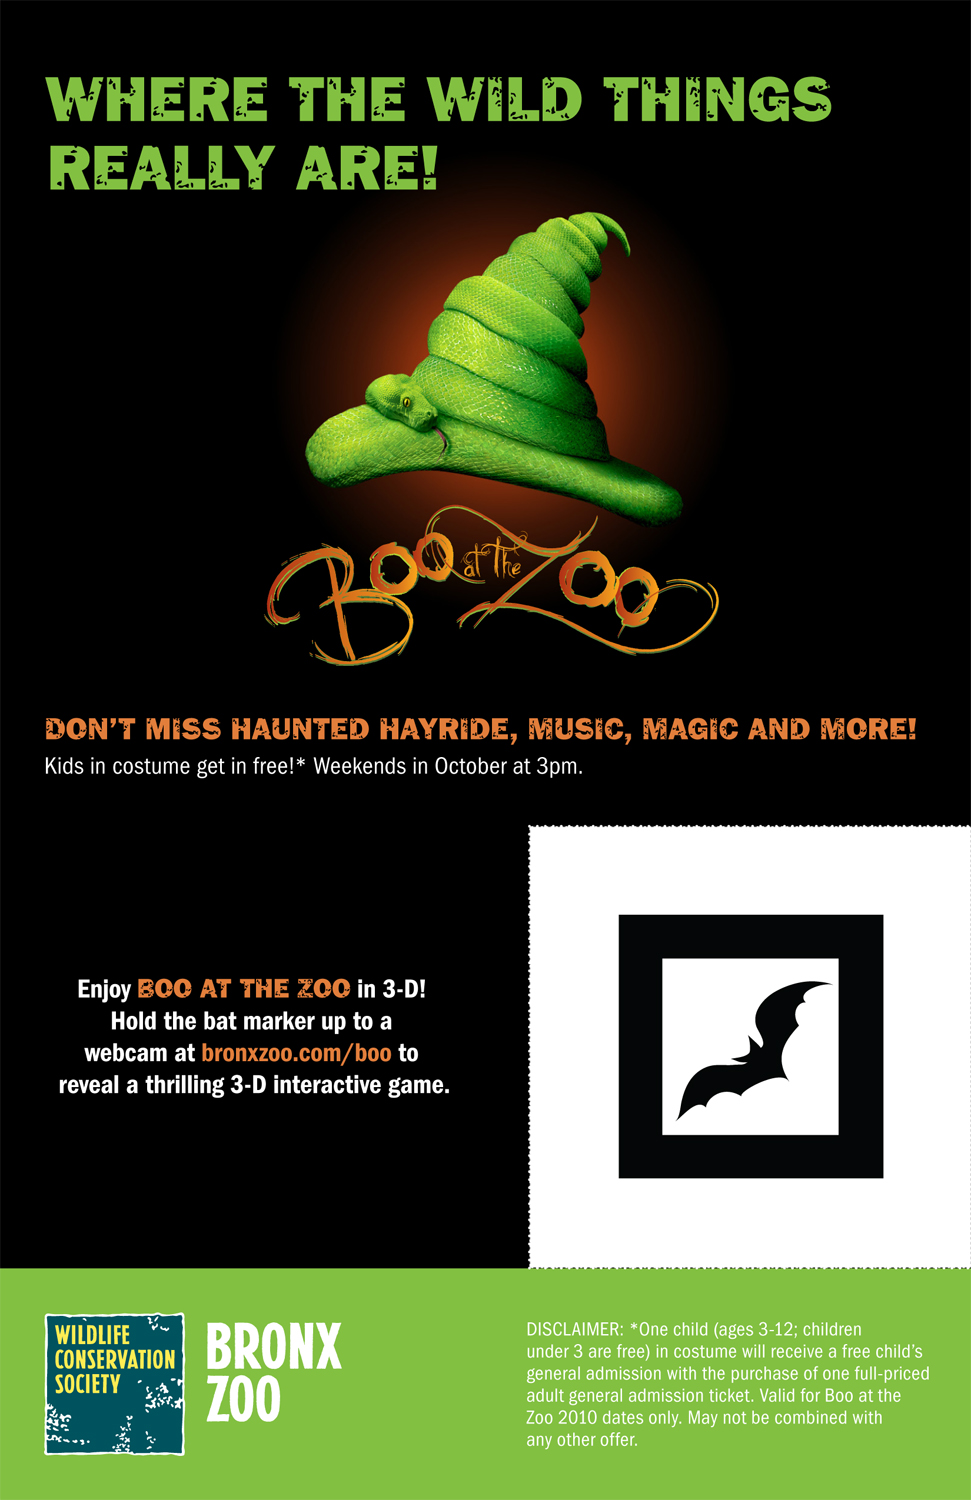 Bronx Zoo's Boo at the Zoo flyer; 3-D interactive game code